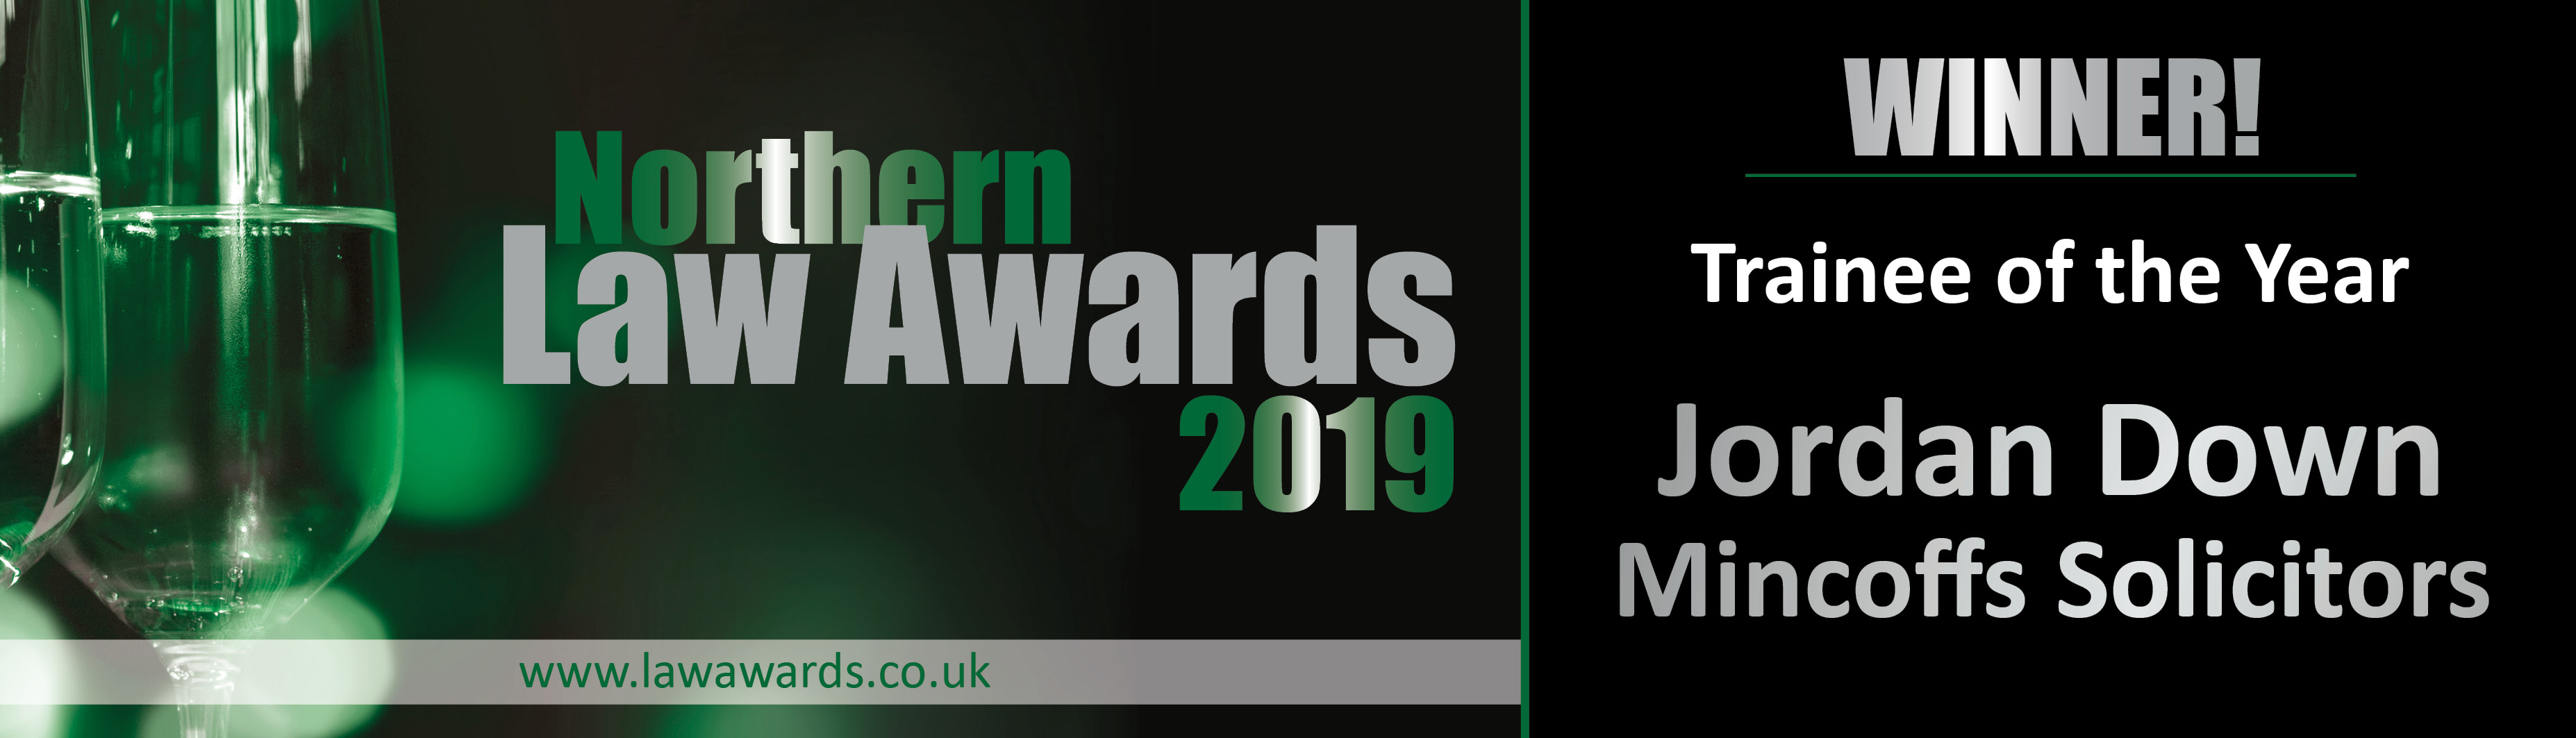 Jordan Down - Northern Law Awards Trainee of the Year Winner 2019 Logo, Mincoffs Solicitors